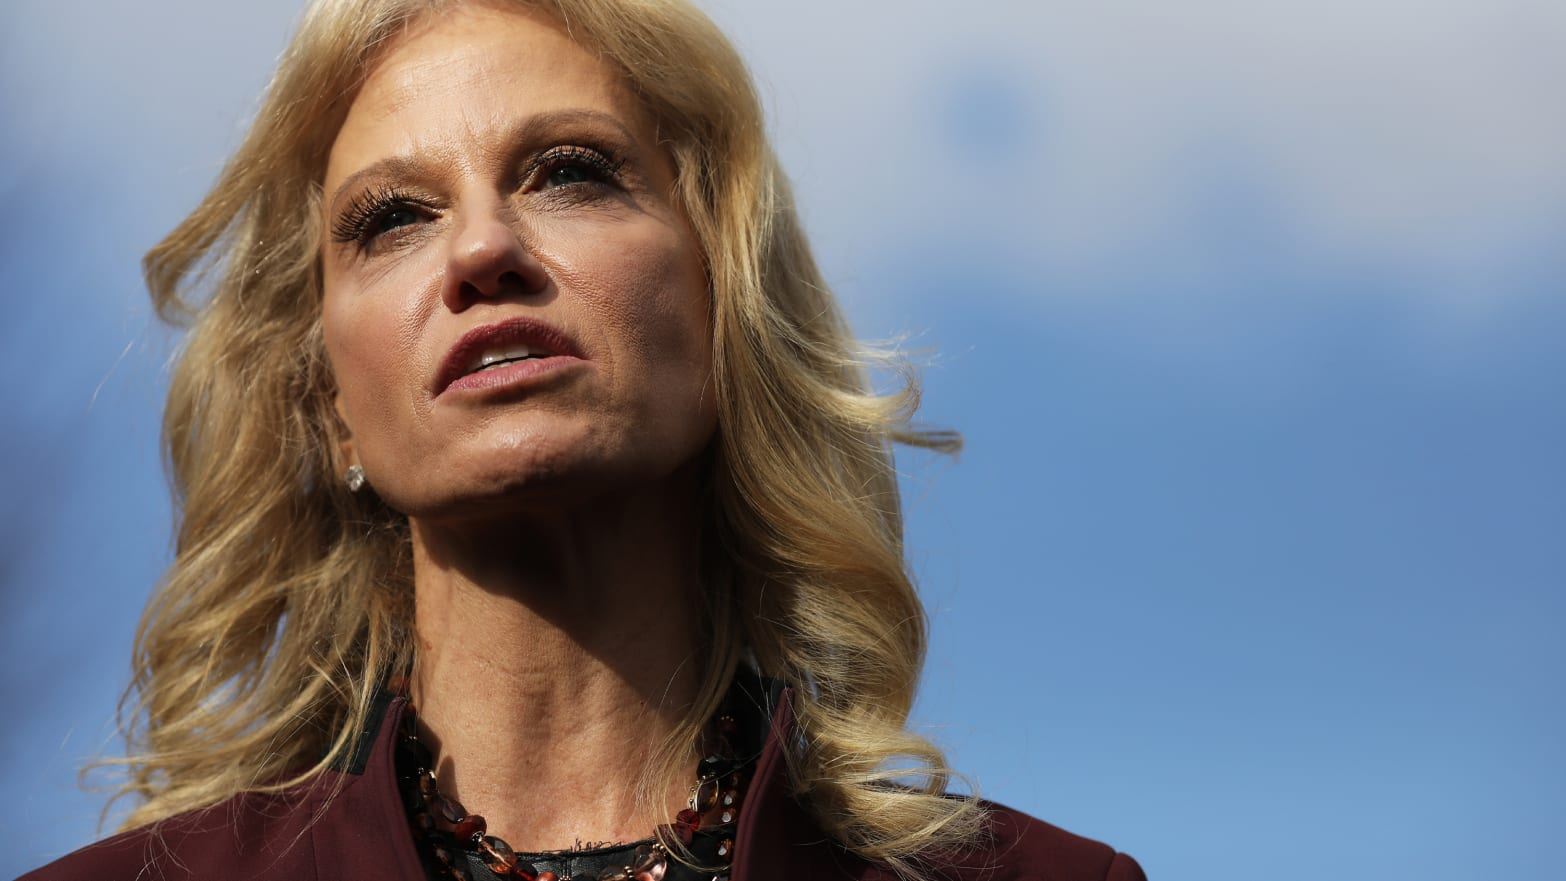 Kellyanne Conway Just 'Disregarded' The Law, Trump-Appointed Watchdog to Testify